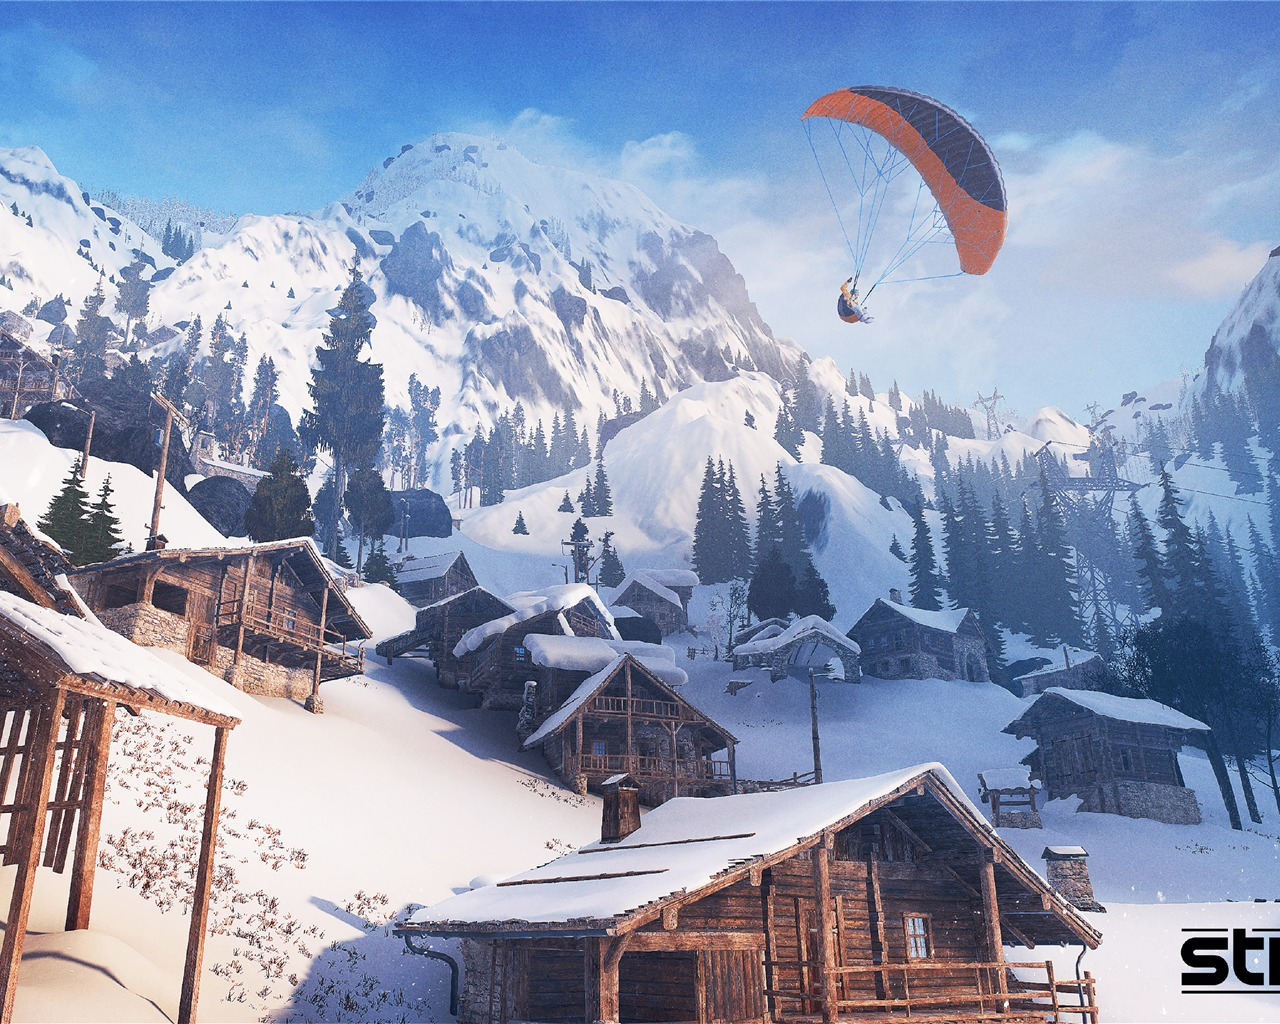 Steep Game 4K Ultra HD - 1280x1024 wallpaper download